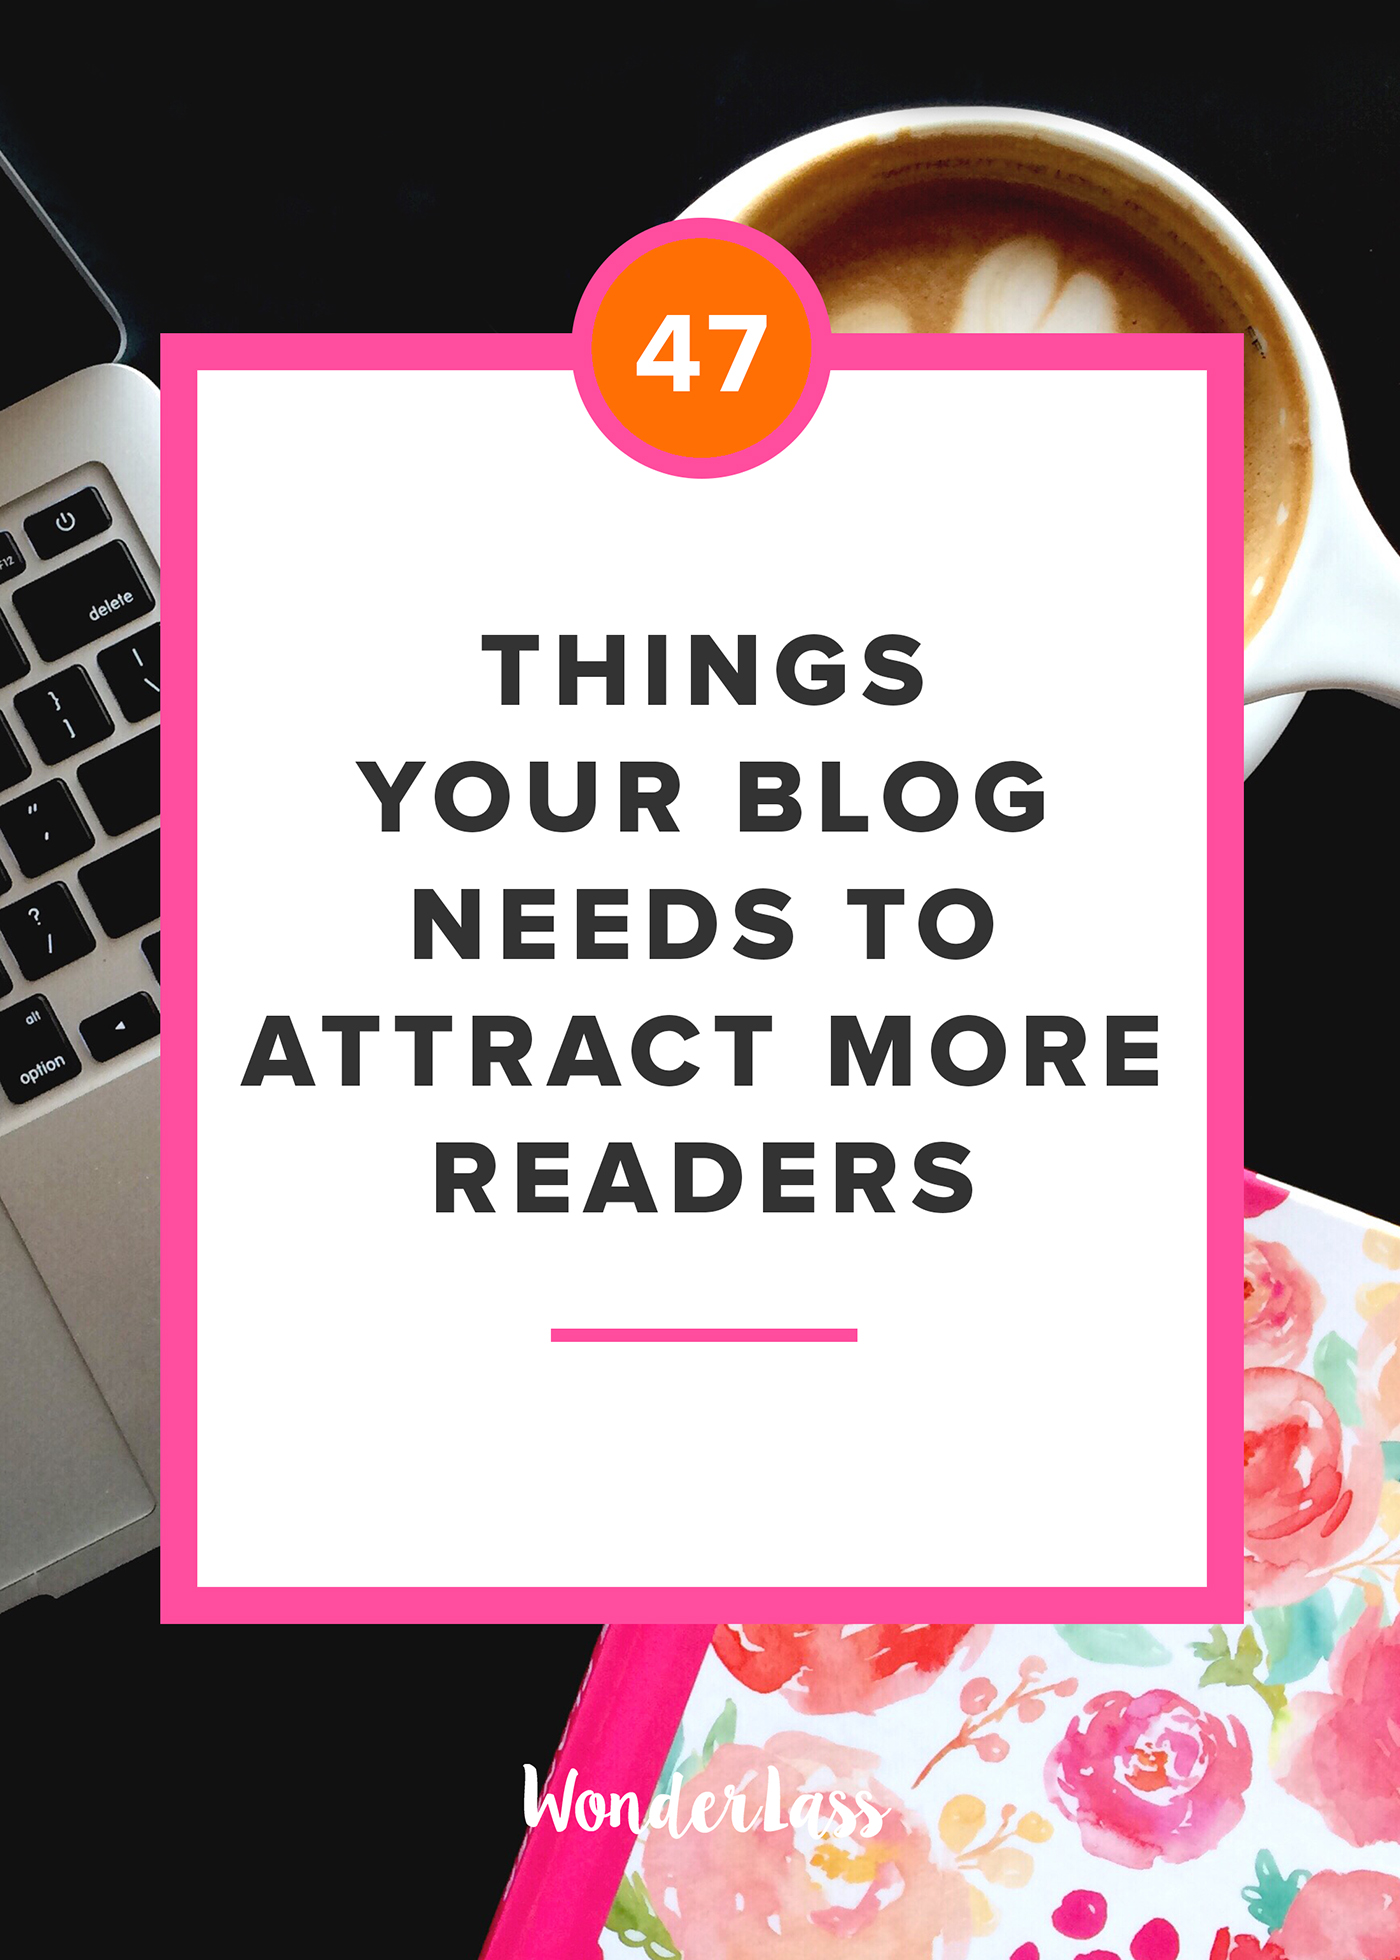 47 Things Your Blog Needs to Attract More Readers (a FREE checklist!) | Wonderlass